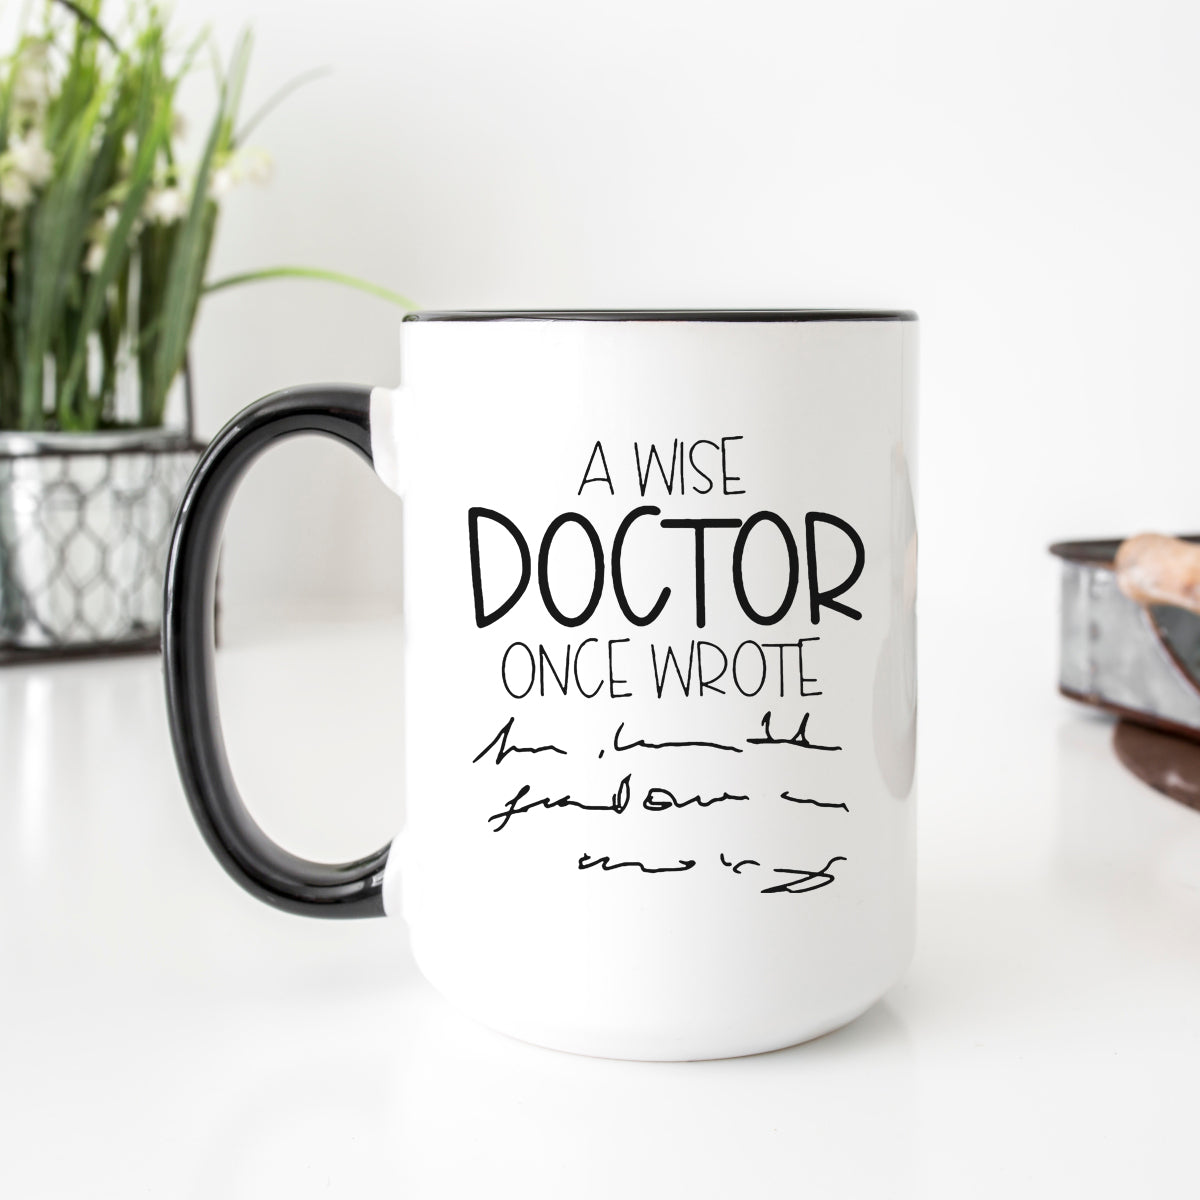 A Wise Doctor Once Wrote Mug